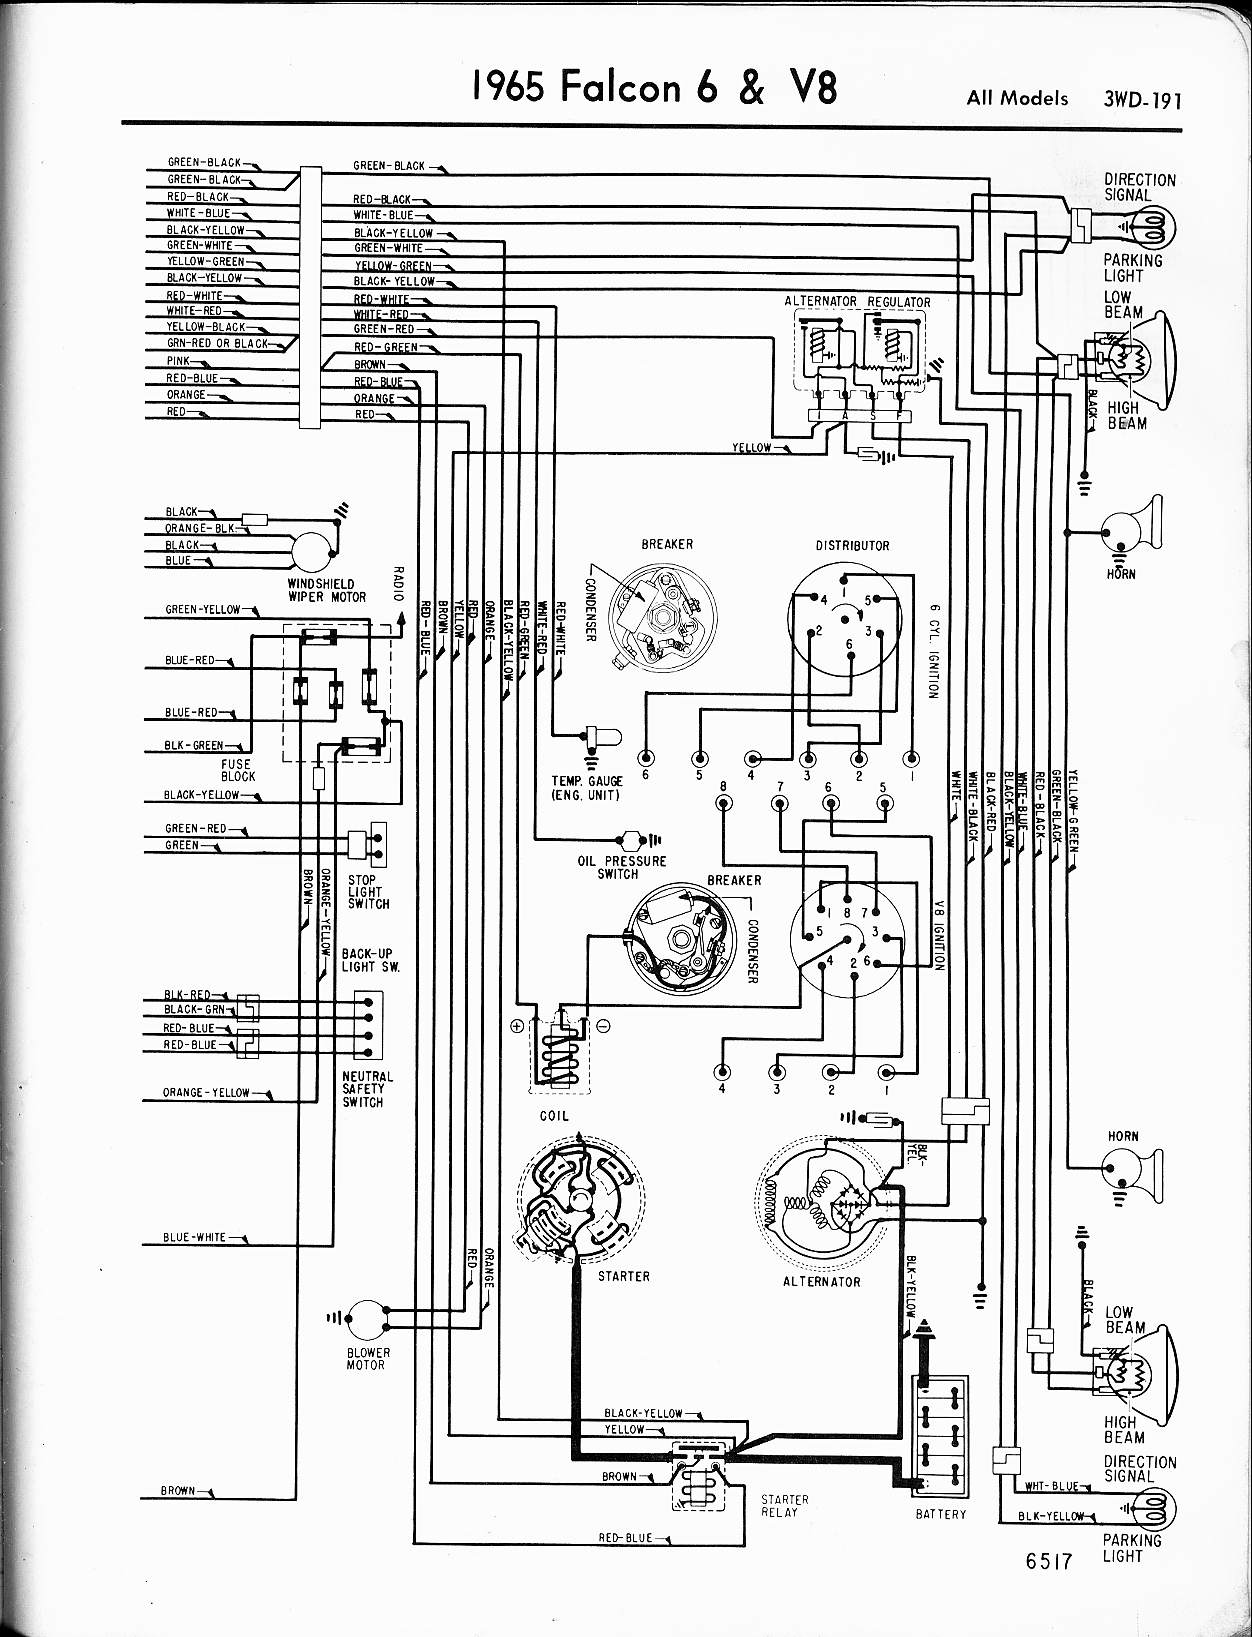 1990 camaro ignition ledningsdiagram